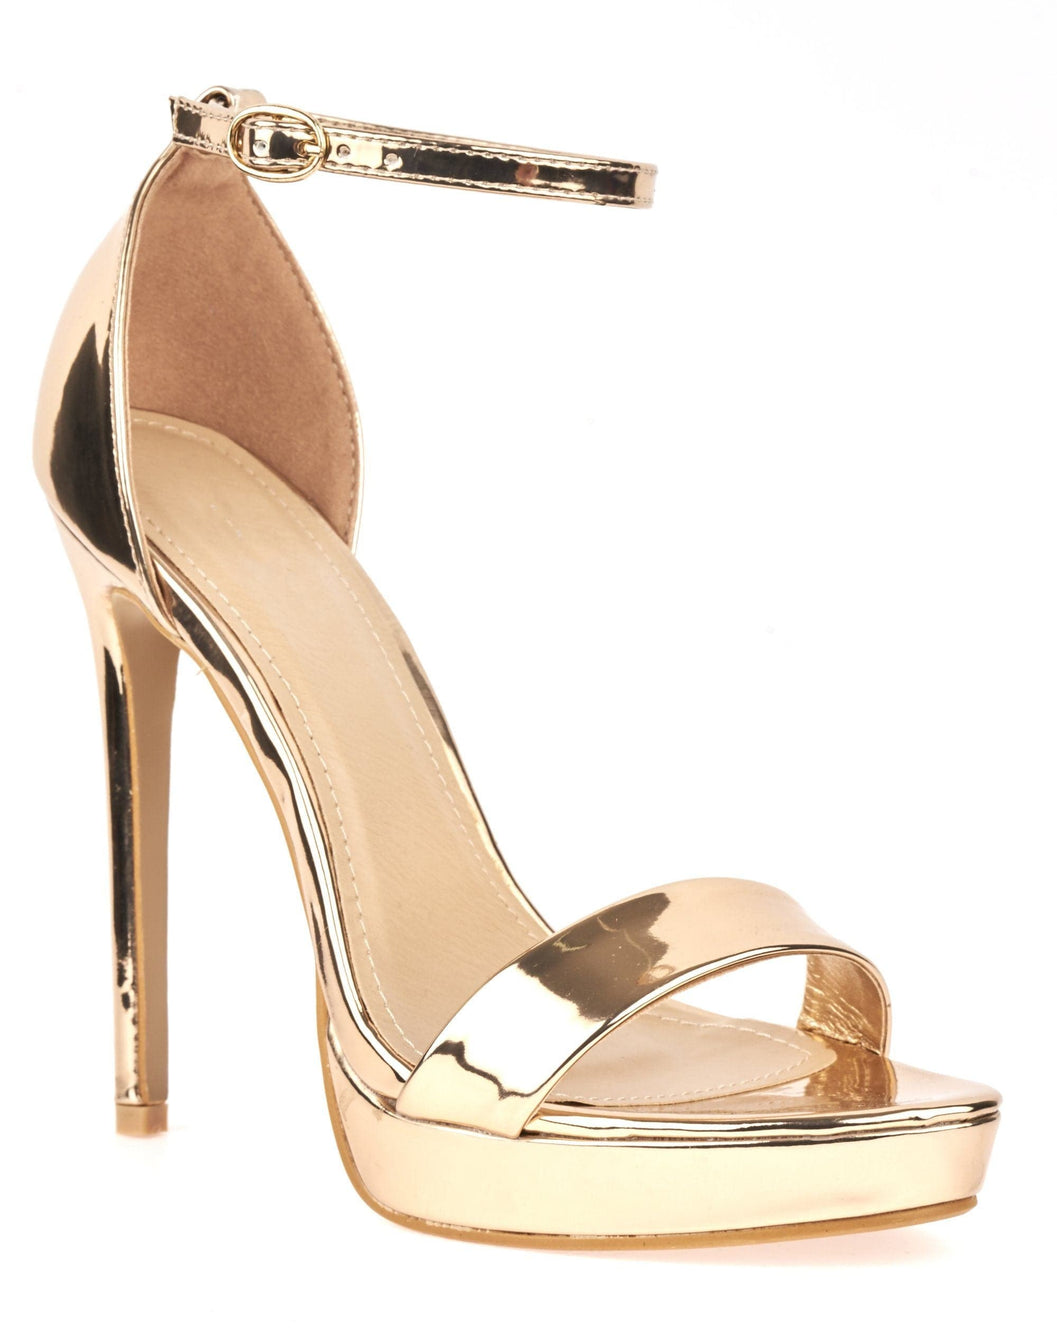 Barely There Platform Sandal in Rose Gold Pu